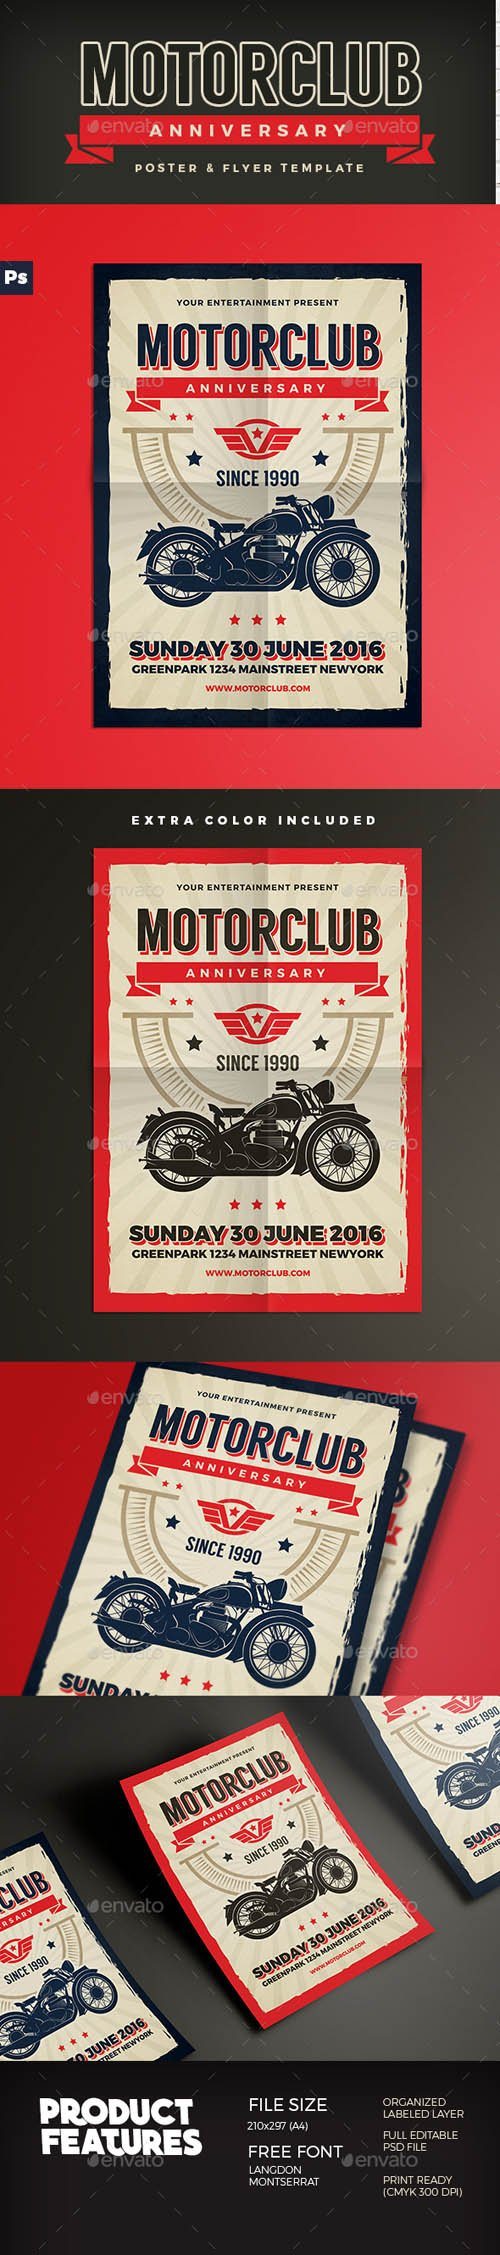 GR - Motor Club Anniversary Event Flyer 15572302